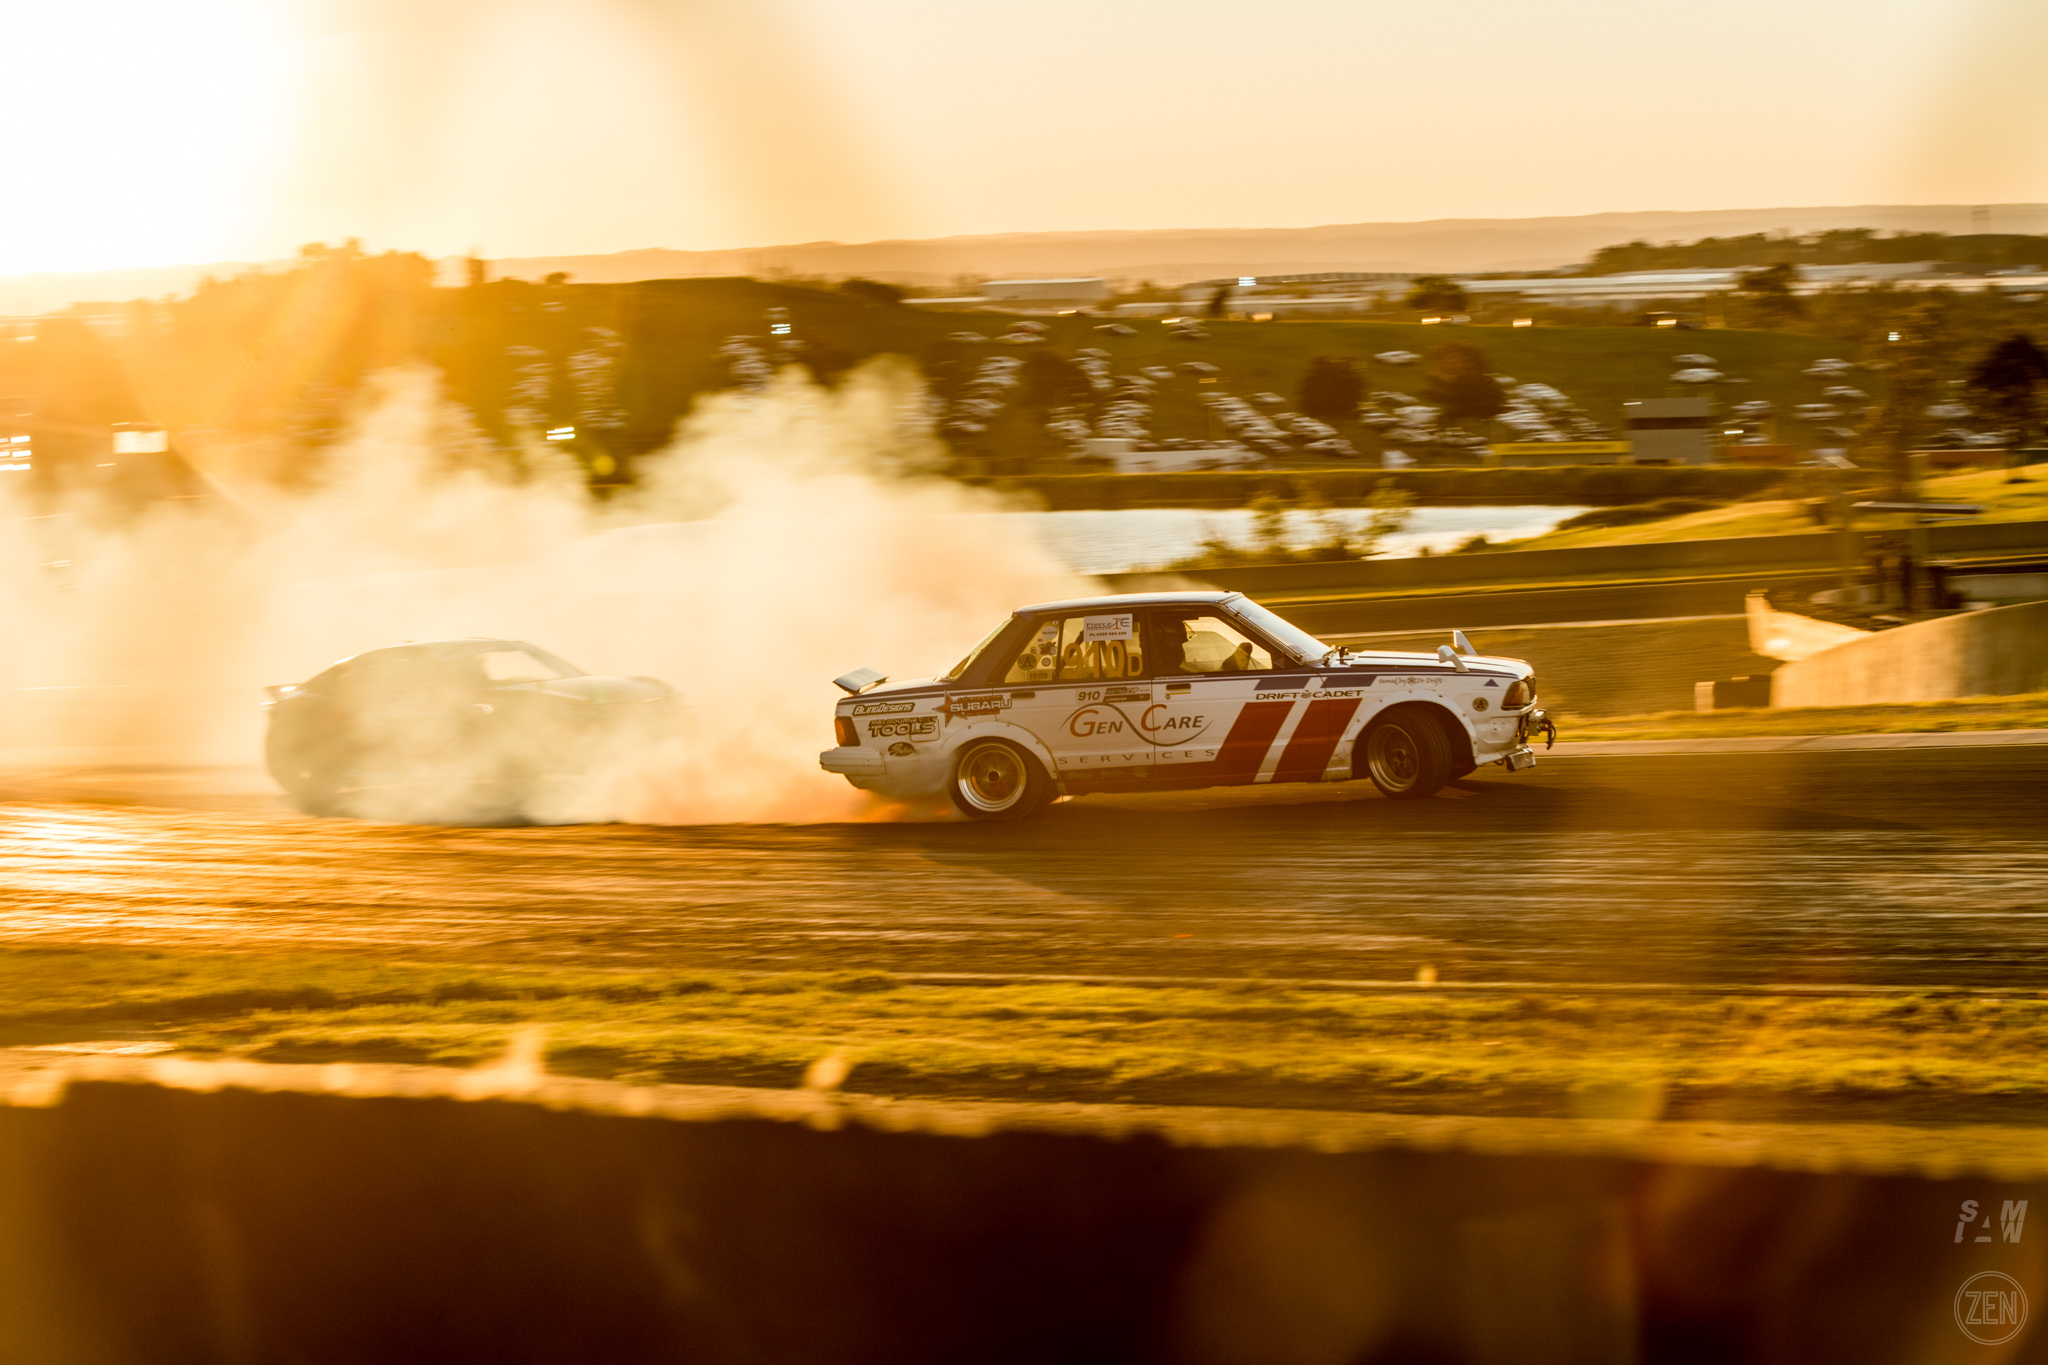 2019-10-18 - WTAC Day 01 067